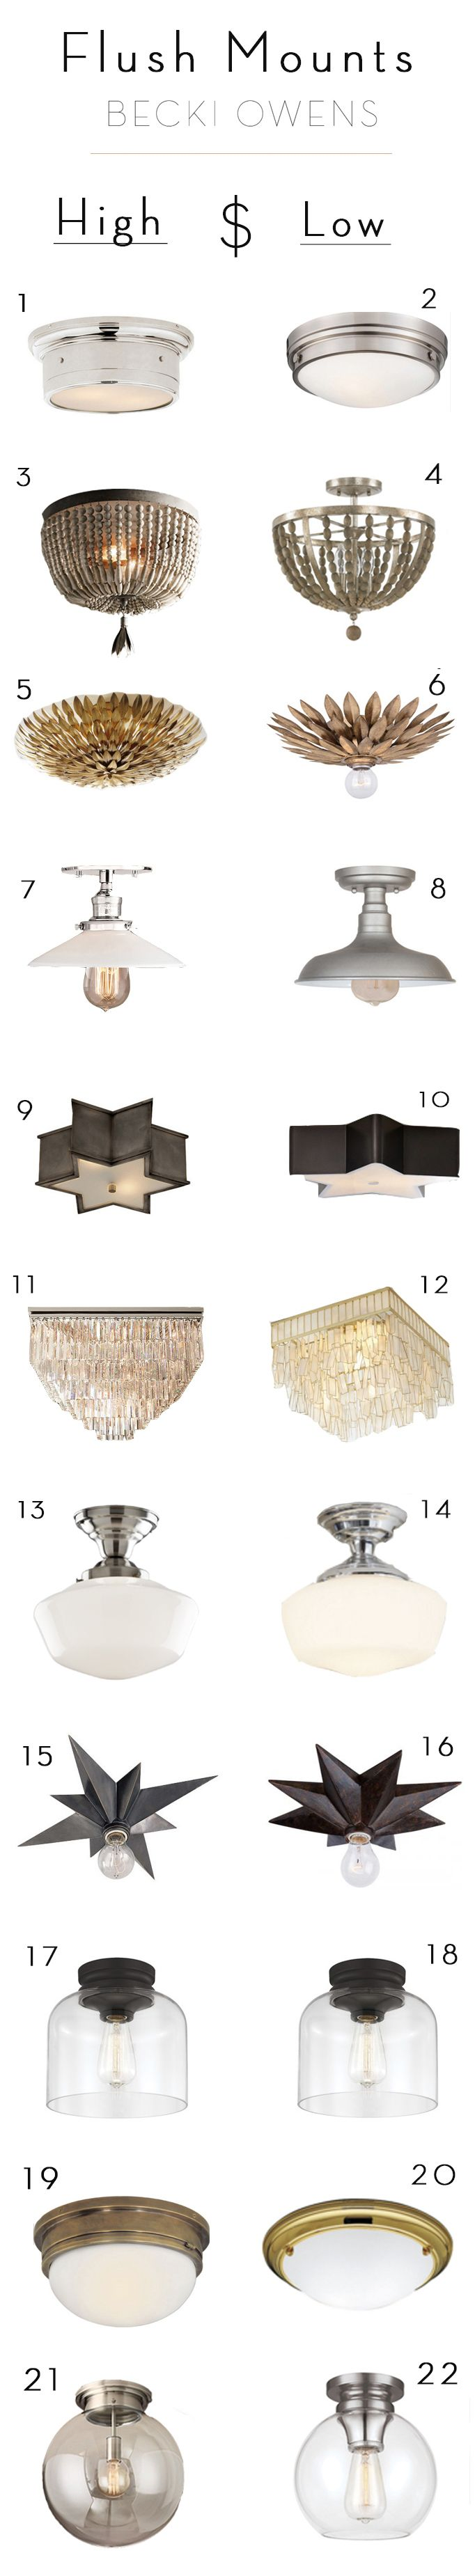 I really believe good lighting is key to a beautiful design, including flush mounts. Sometimes flush mount lighting can get a bad rap, but now days you can find flush mounts that make a space. Below is some amazing inspiration with stunning flush mount lighting.